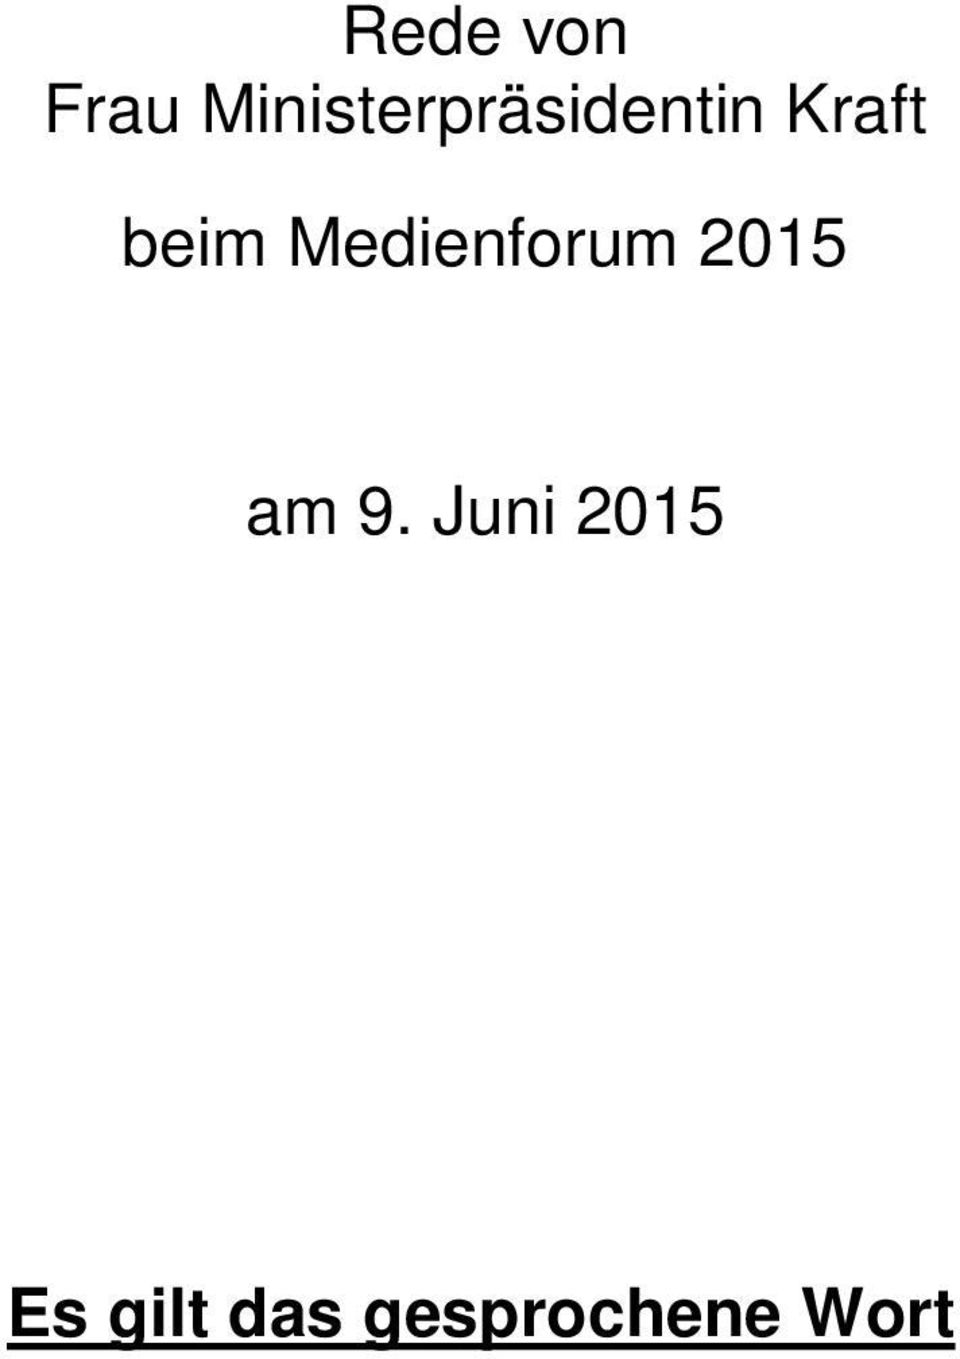 beim Medienforum 2015 am 9.